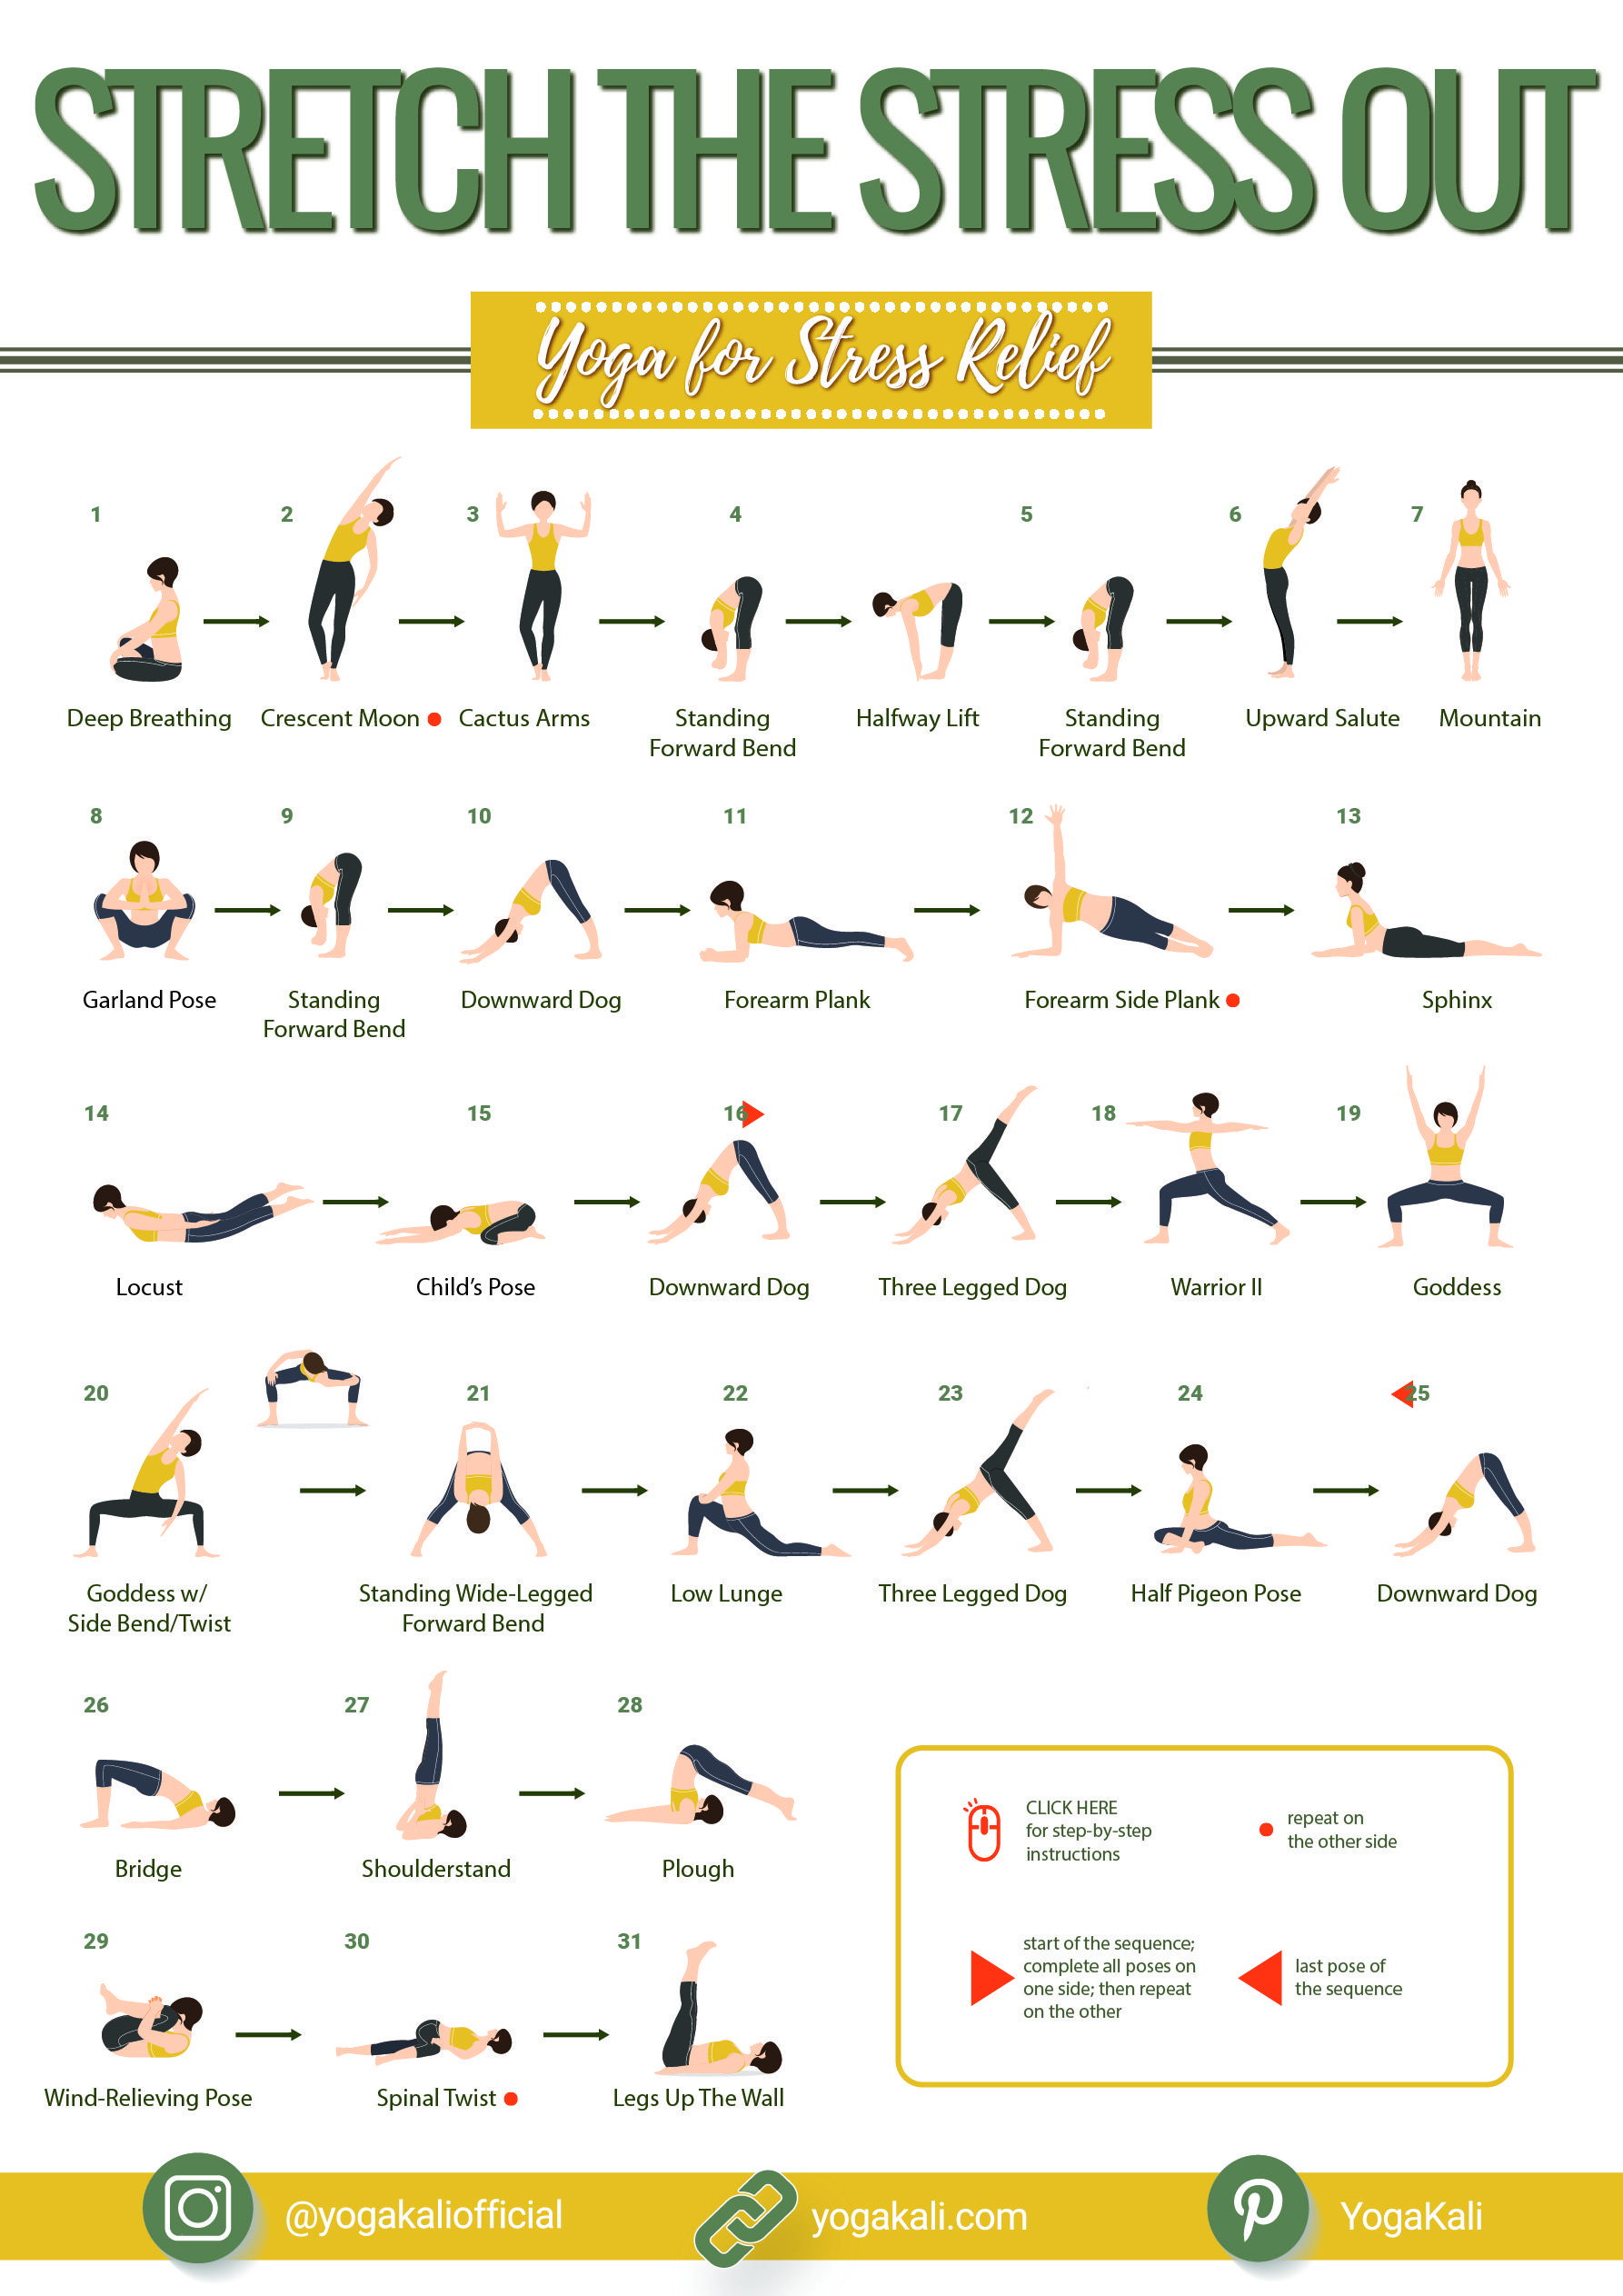 Yoga routine for stress relief: preview